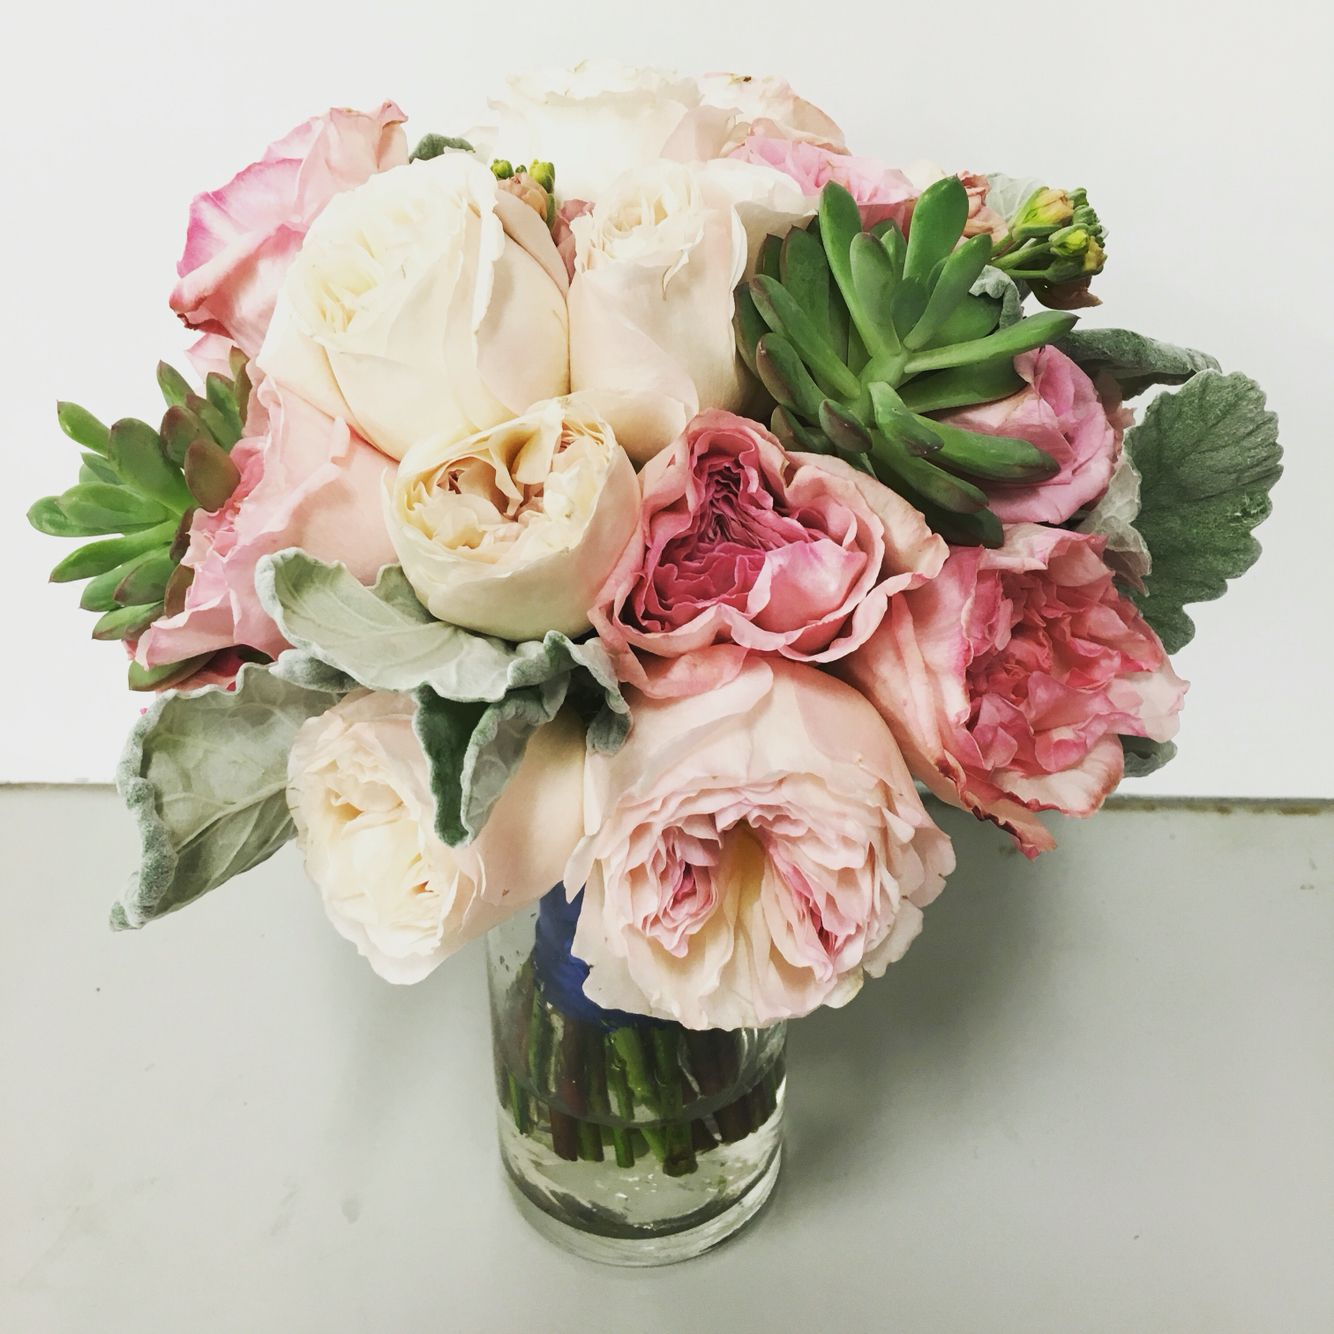 blush garden rose bouquet accented with succulents and dusty miler exoticgreengarden - Blush Garden Rose Bouquet